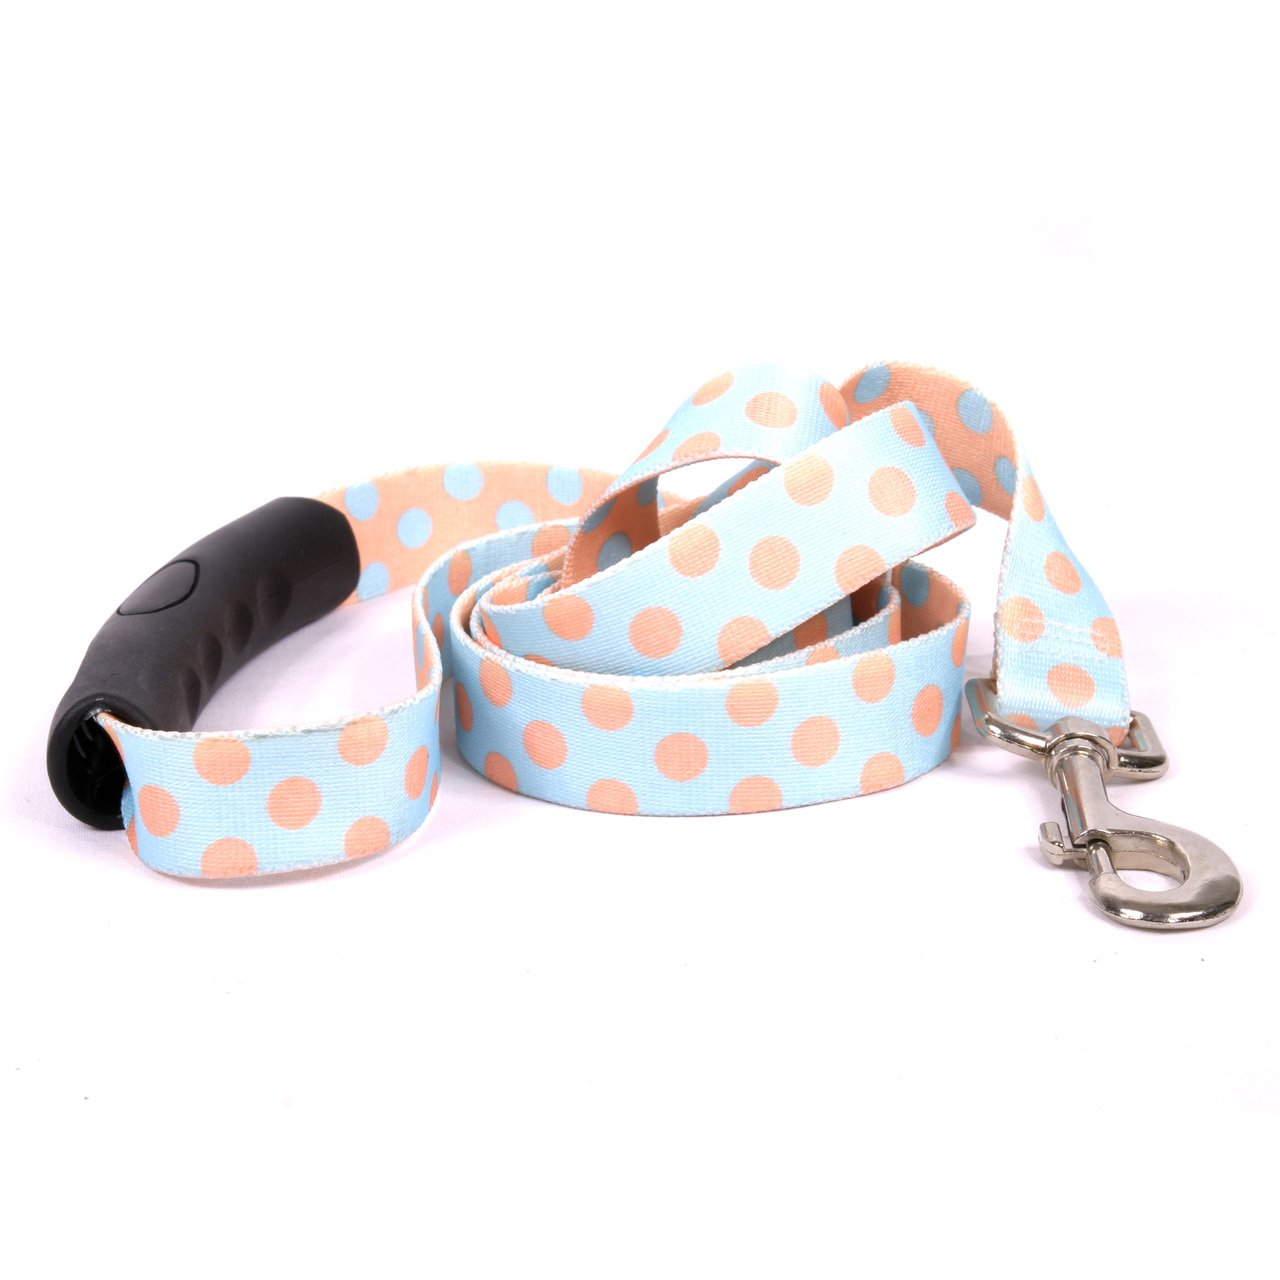 Yellow Dog Design Blue and Melon Polka Dot EZ-Grip Dog Leash with Comfort Handle 1'' Wide and 5' (60''), Large